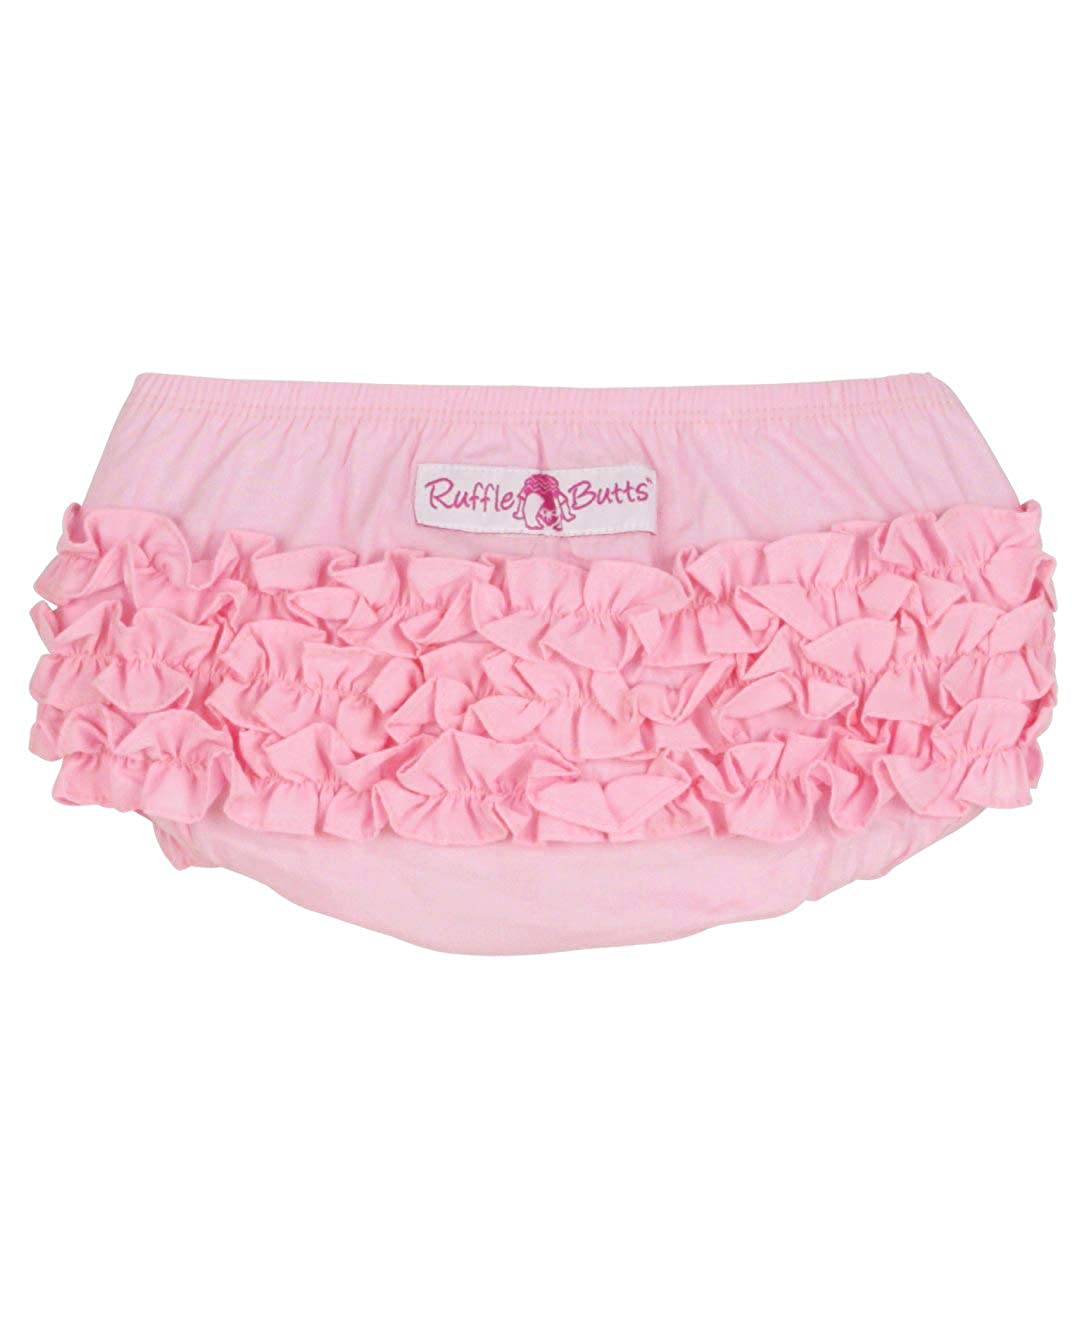 RuffleButts Baby//Toddler Girls Toddler Pink Cotton Ruffled Diaper Cover 12-18m